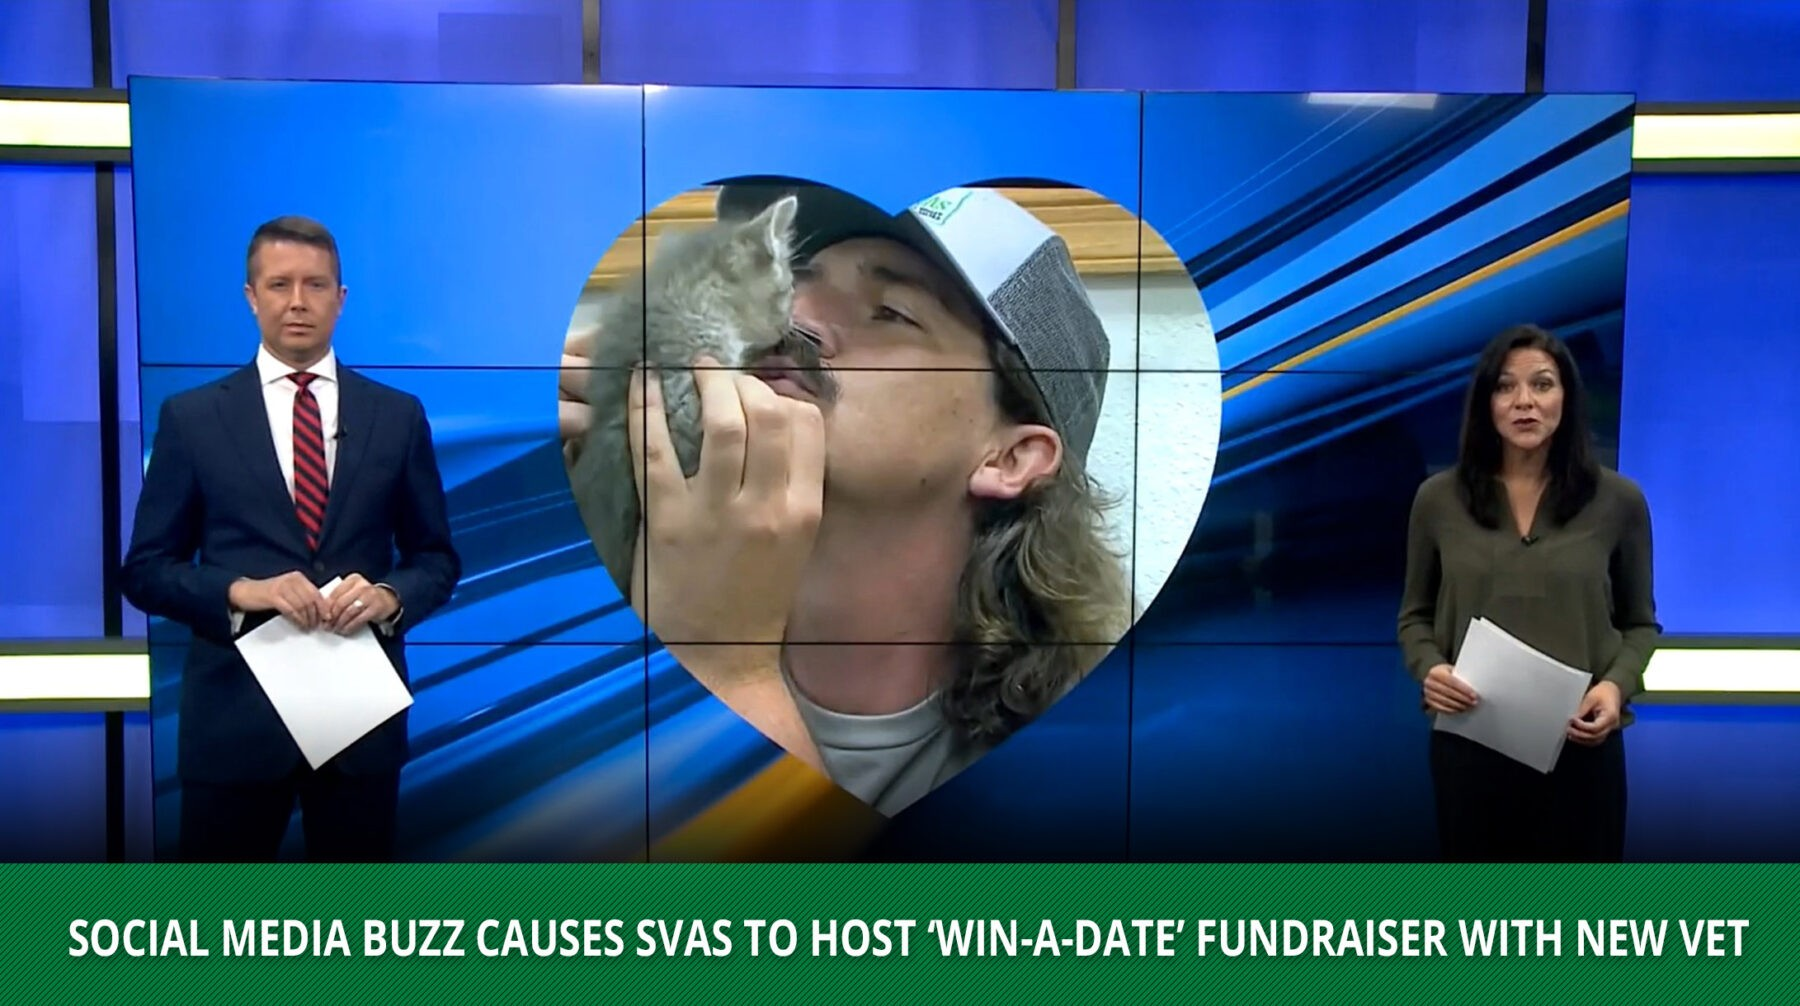 social-media-buzz-causes-svas-to-host-win-a-date-fundraiser-with-new-vet